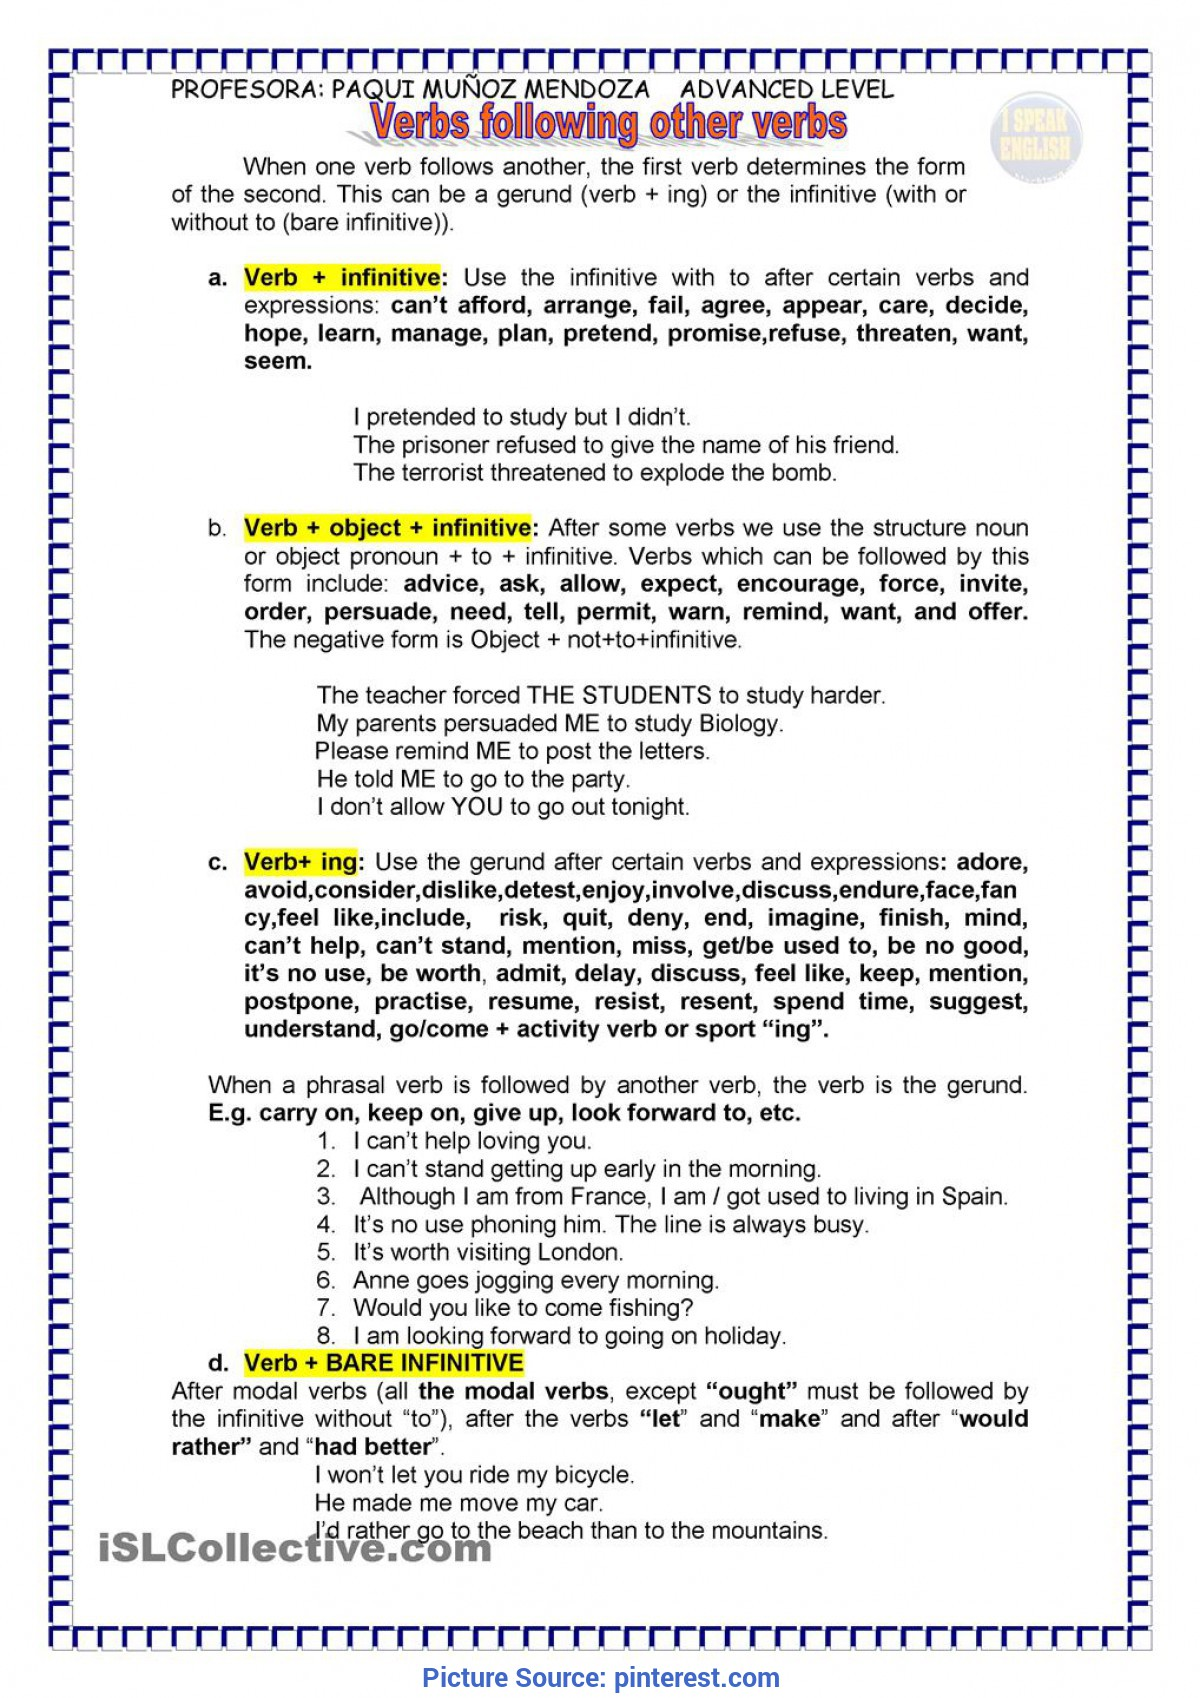 gerund infinitive role play worksheet printable worksheets and activities for teachers Resume Resume Gerund Or Infinitive